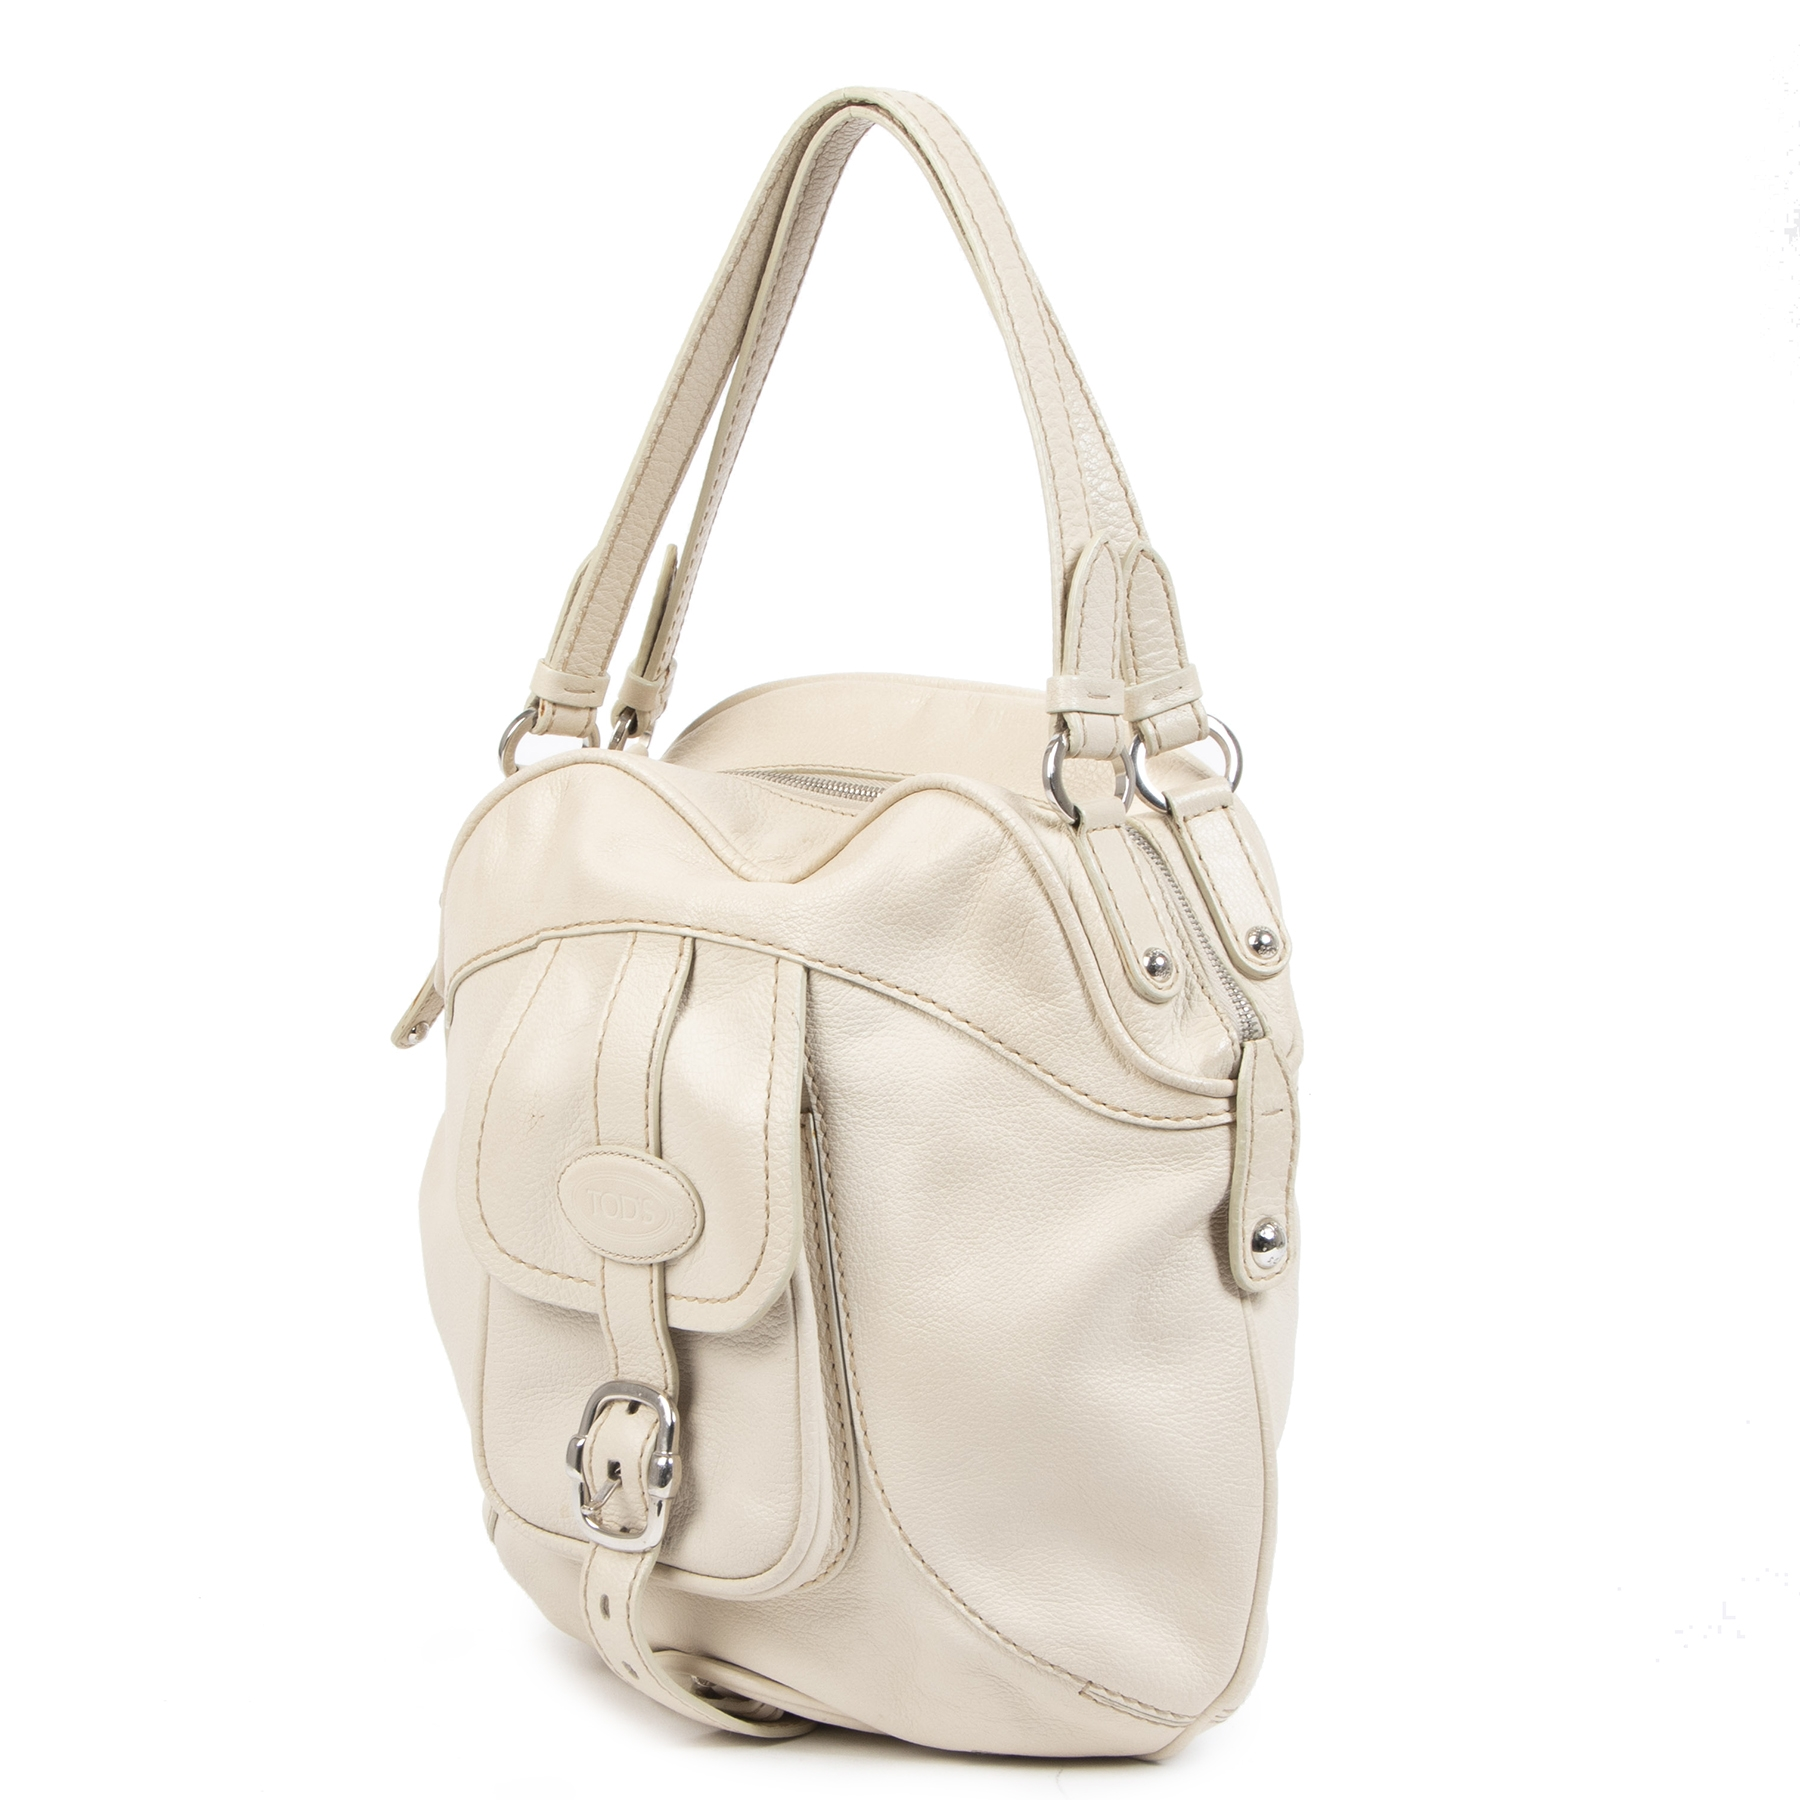 Authentique seconde-main vintage Tods White Shoulder Bag achète en ligne webshop LabelLOV